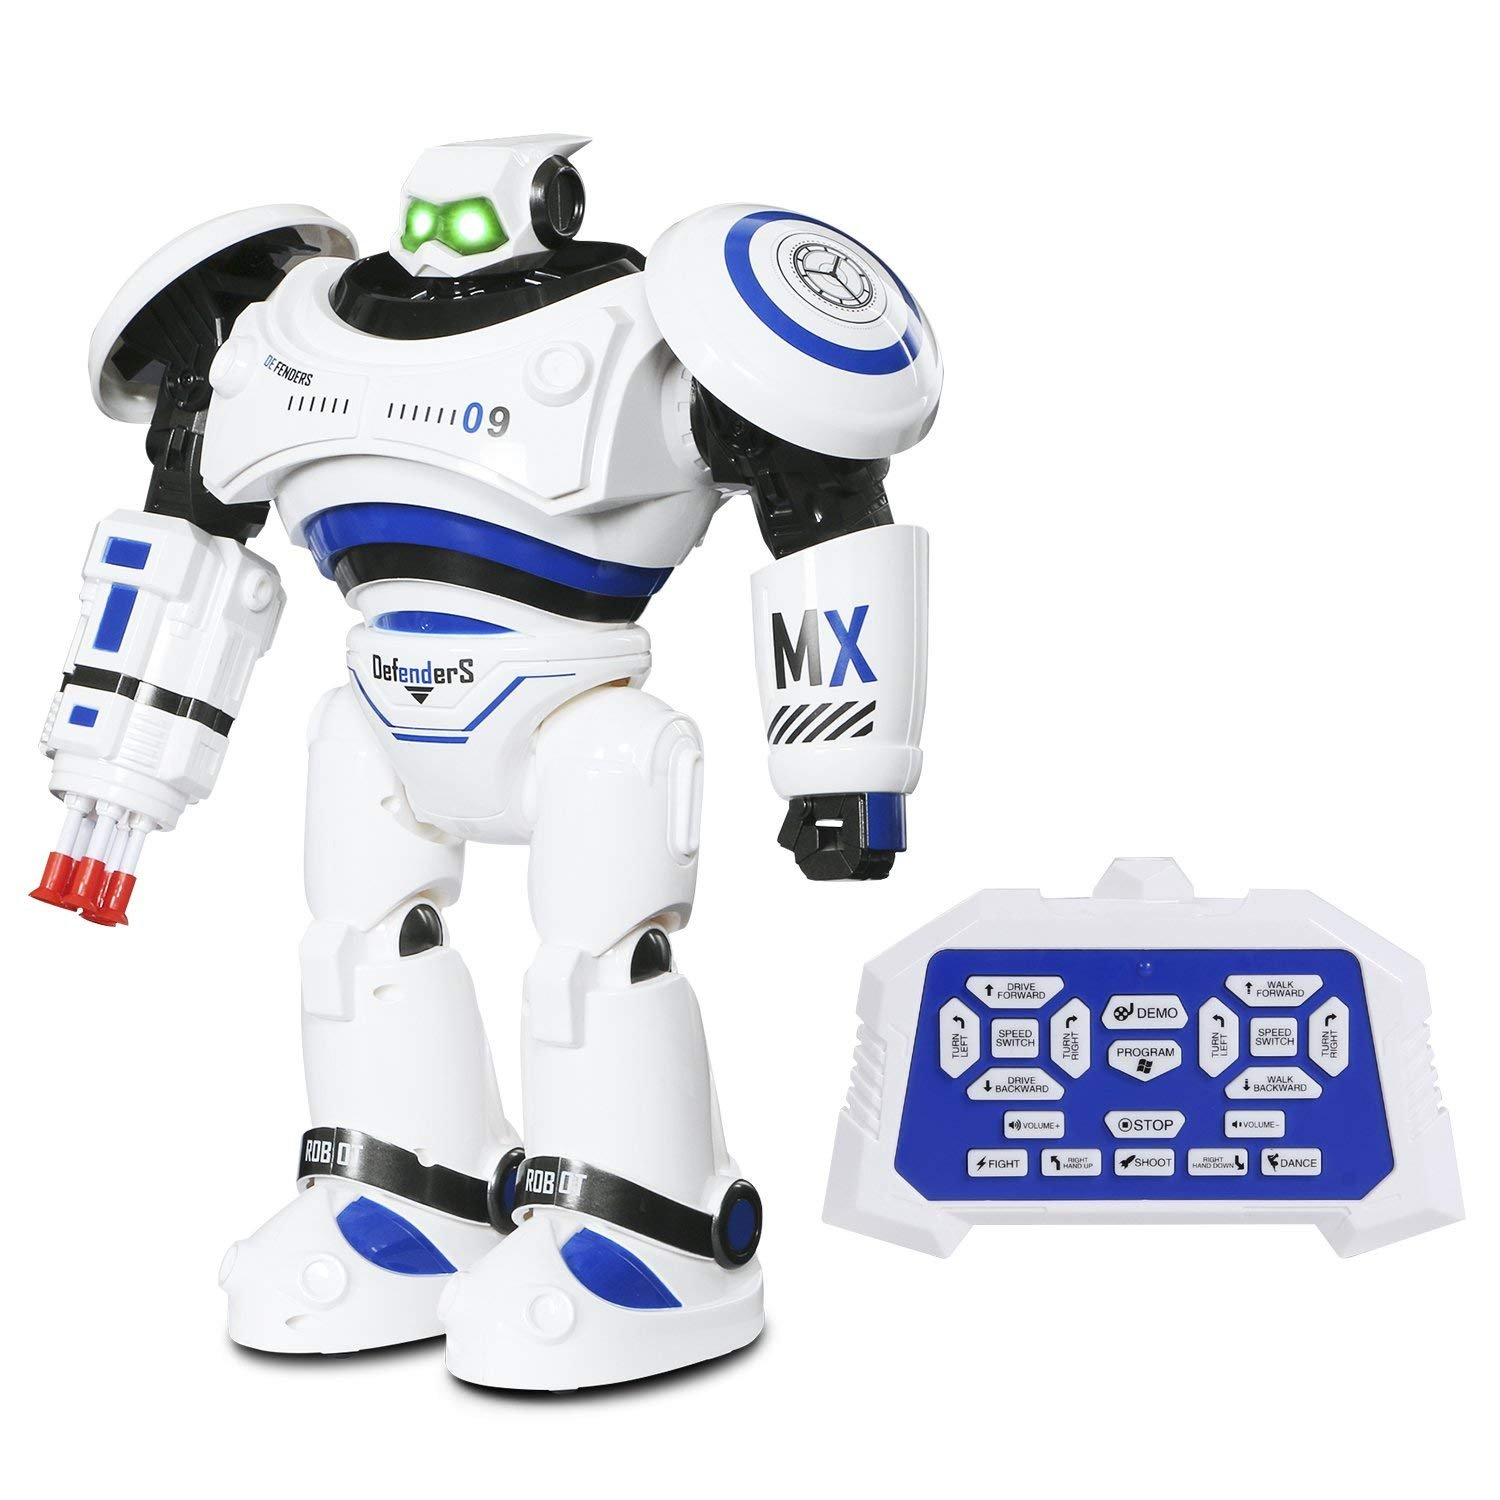 Large Robot Toy, Remote Control RC Combat Fighting Robot for Kids Birthday Present Gift, Dancing Shooting Infrared Sensing Robot for Kids Boy Girl by Toch (Image #7)